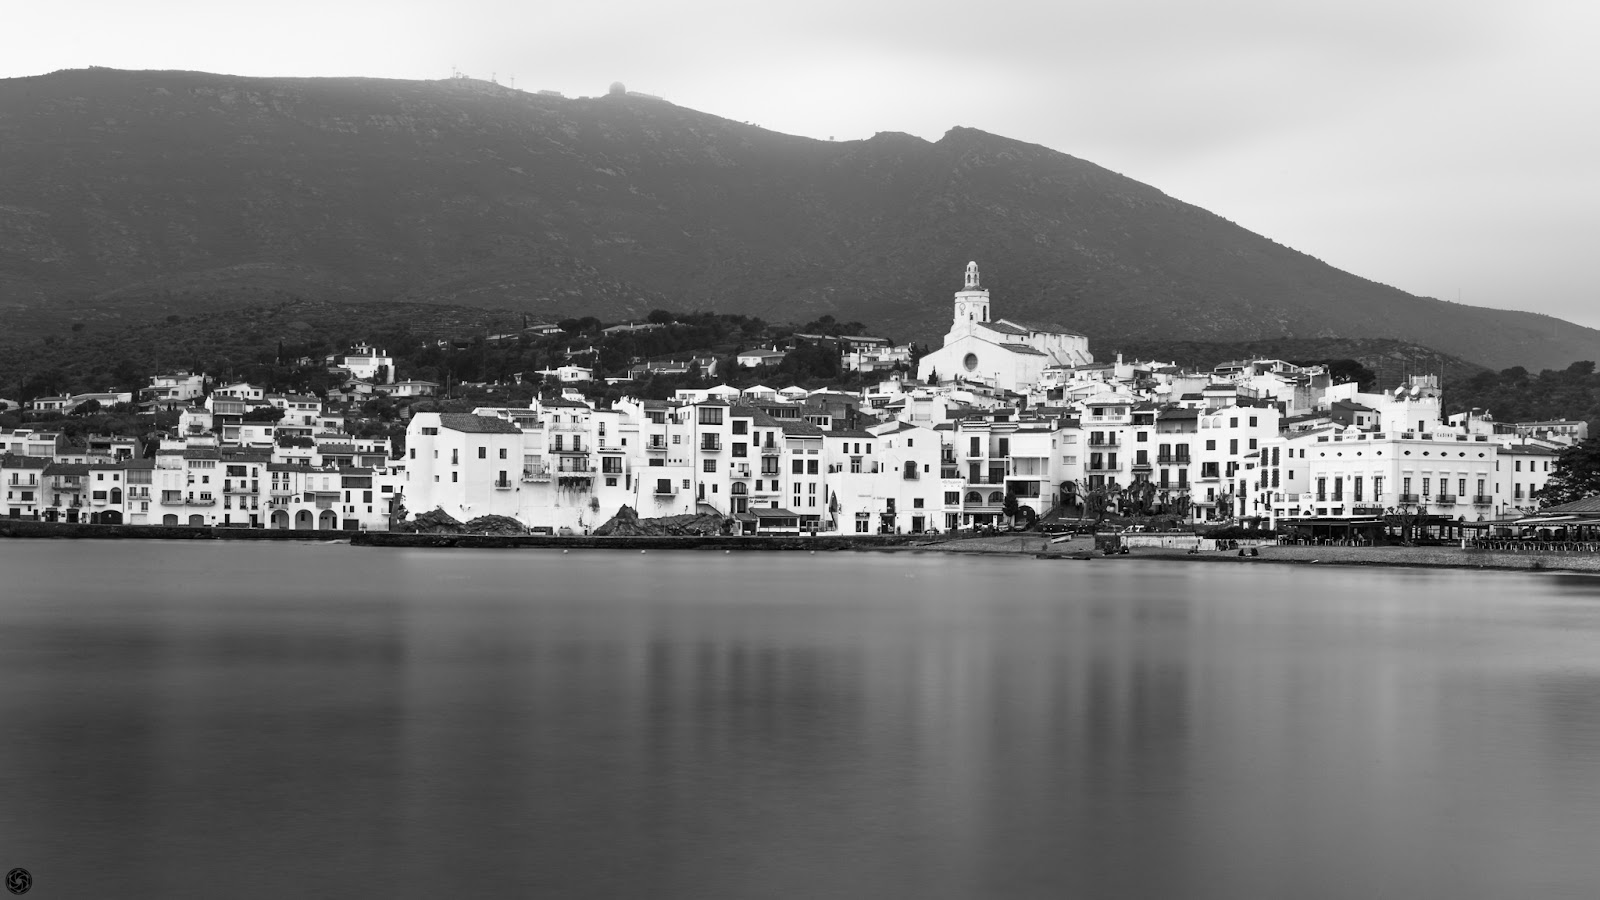 Cadaqués :: Canon EOS 5D MkIII | ISO100 | Canon 24-105@40mm | f/8.0 | 1/60s (ND400)